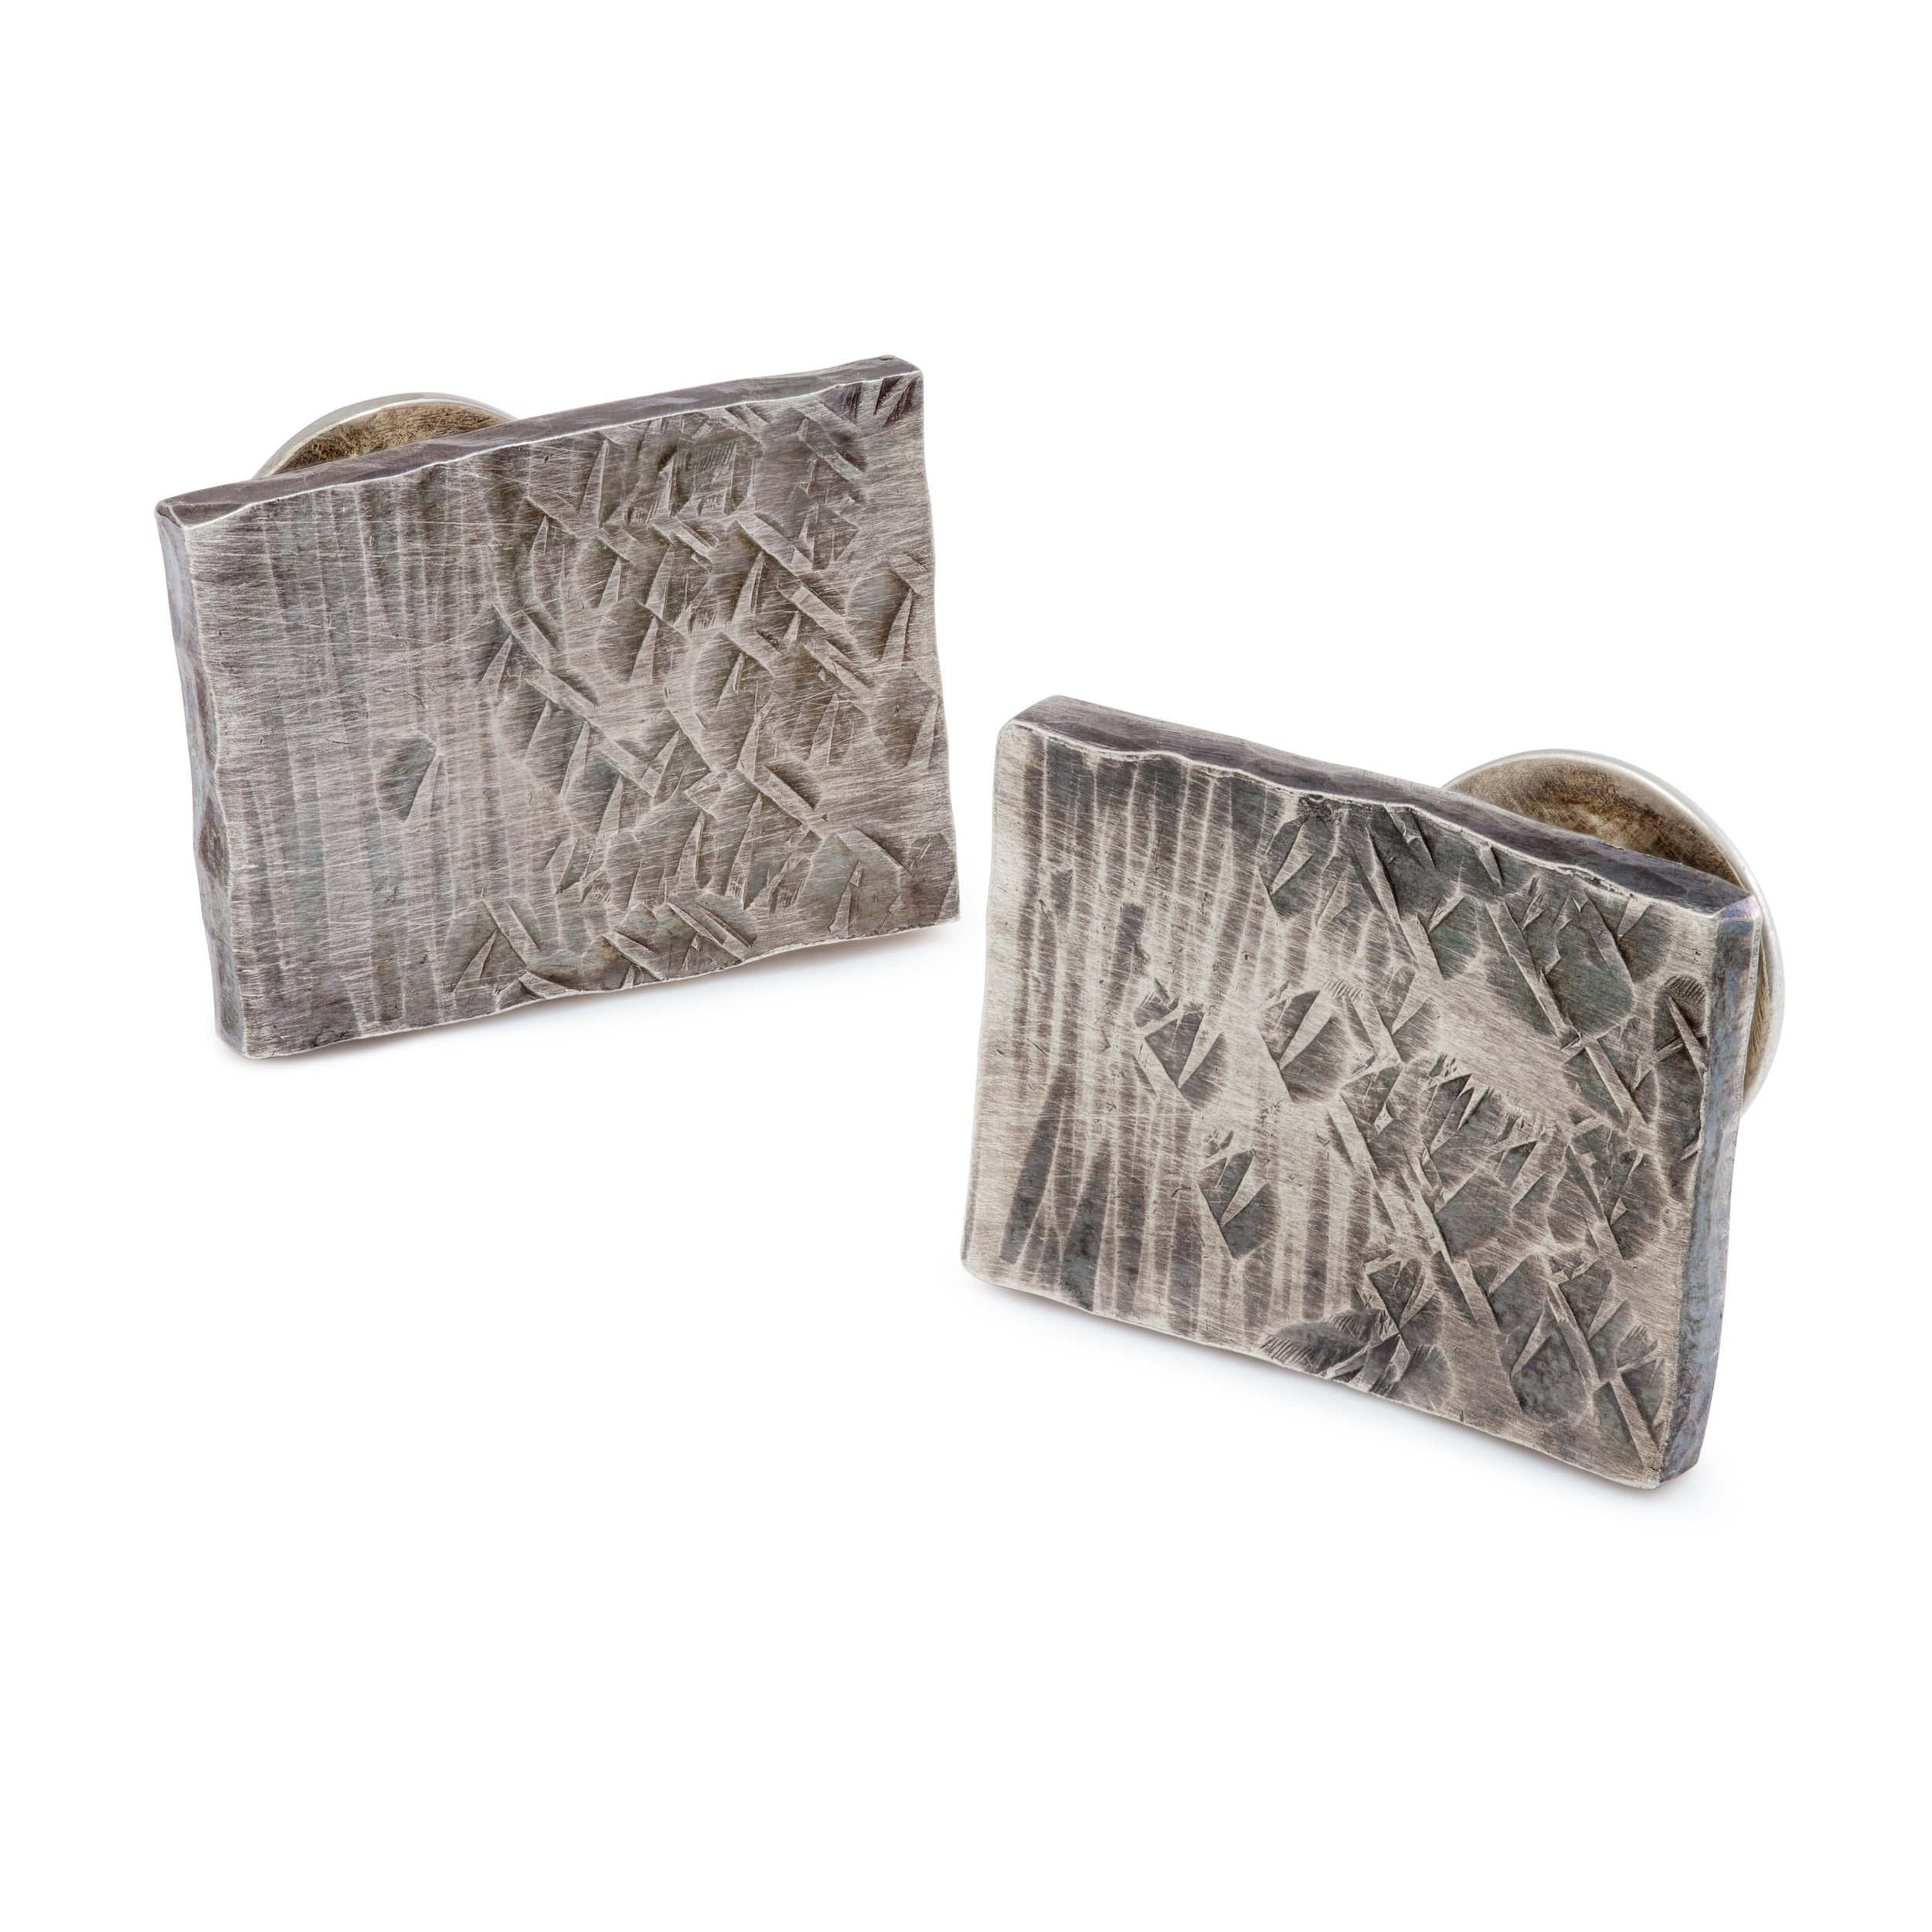 Silver cufflinks - see available to buy